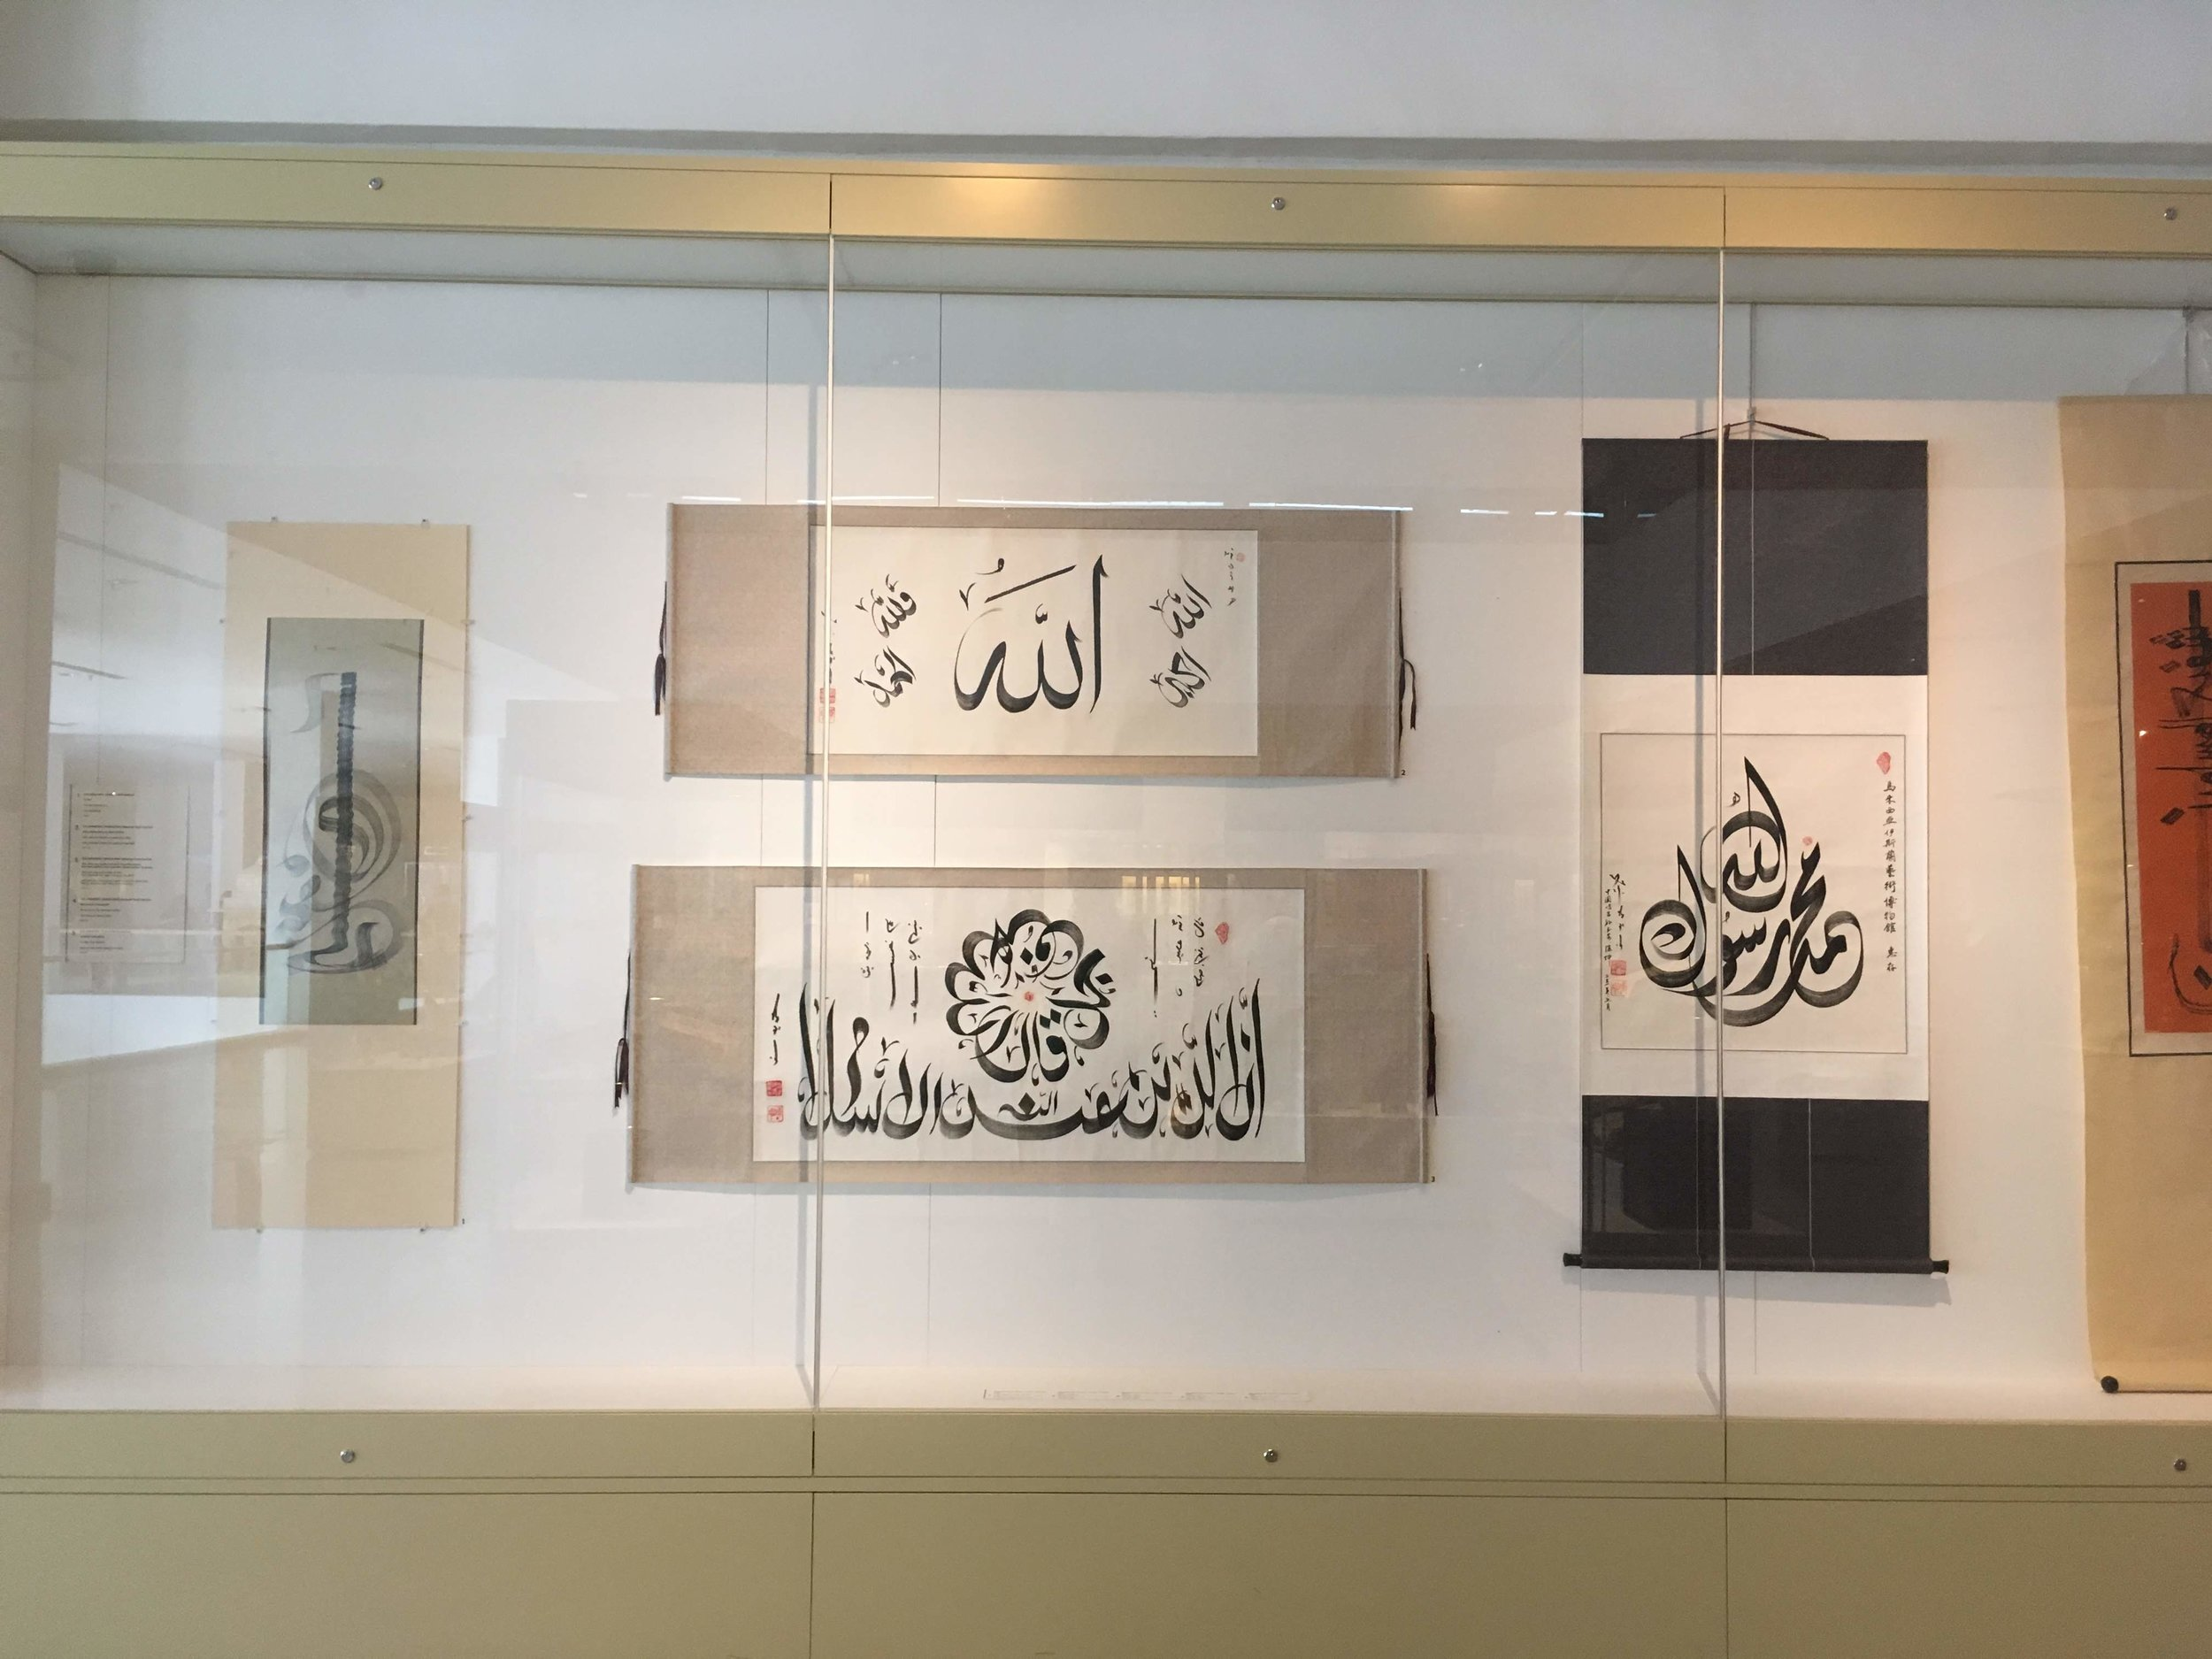 an exhibition on calligraphy at the Islamic Arts Museum, Kuala Lumpur, Malaysia